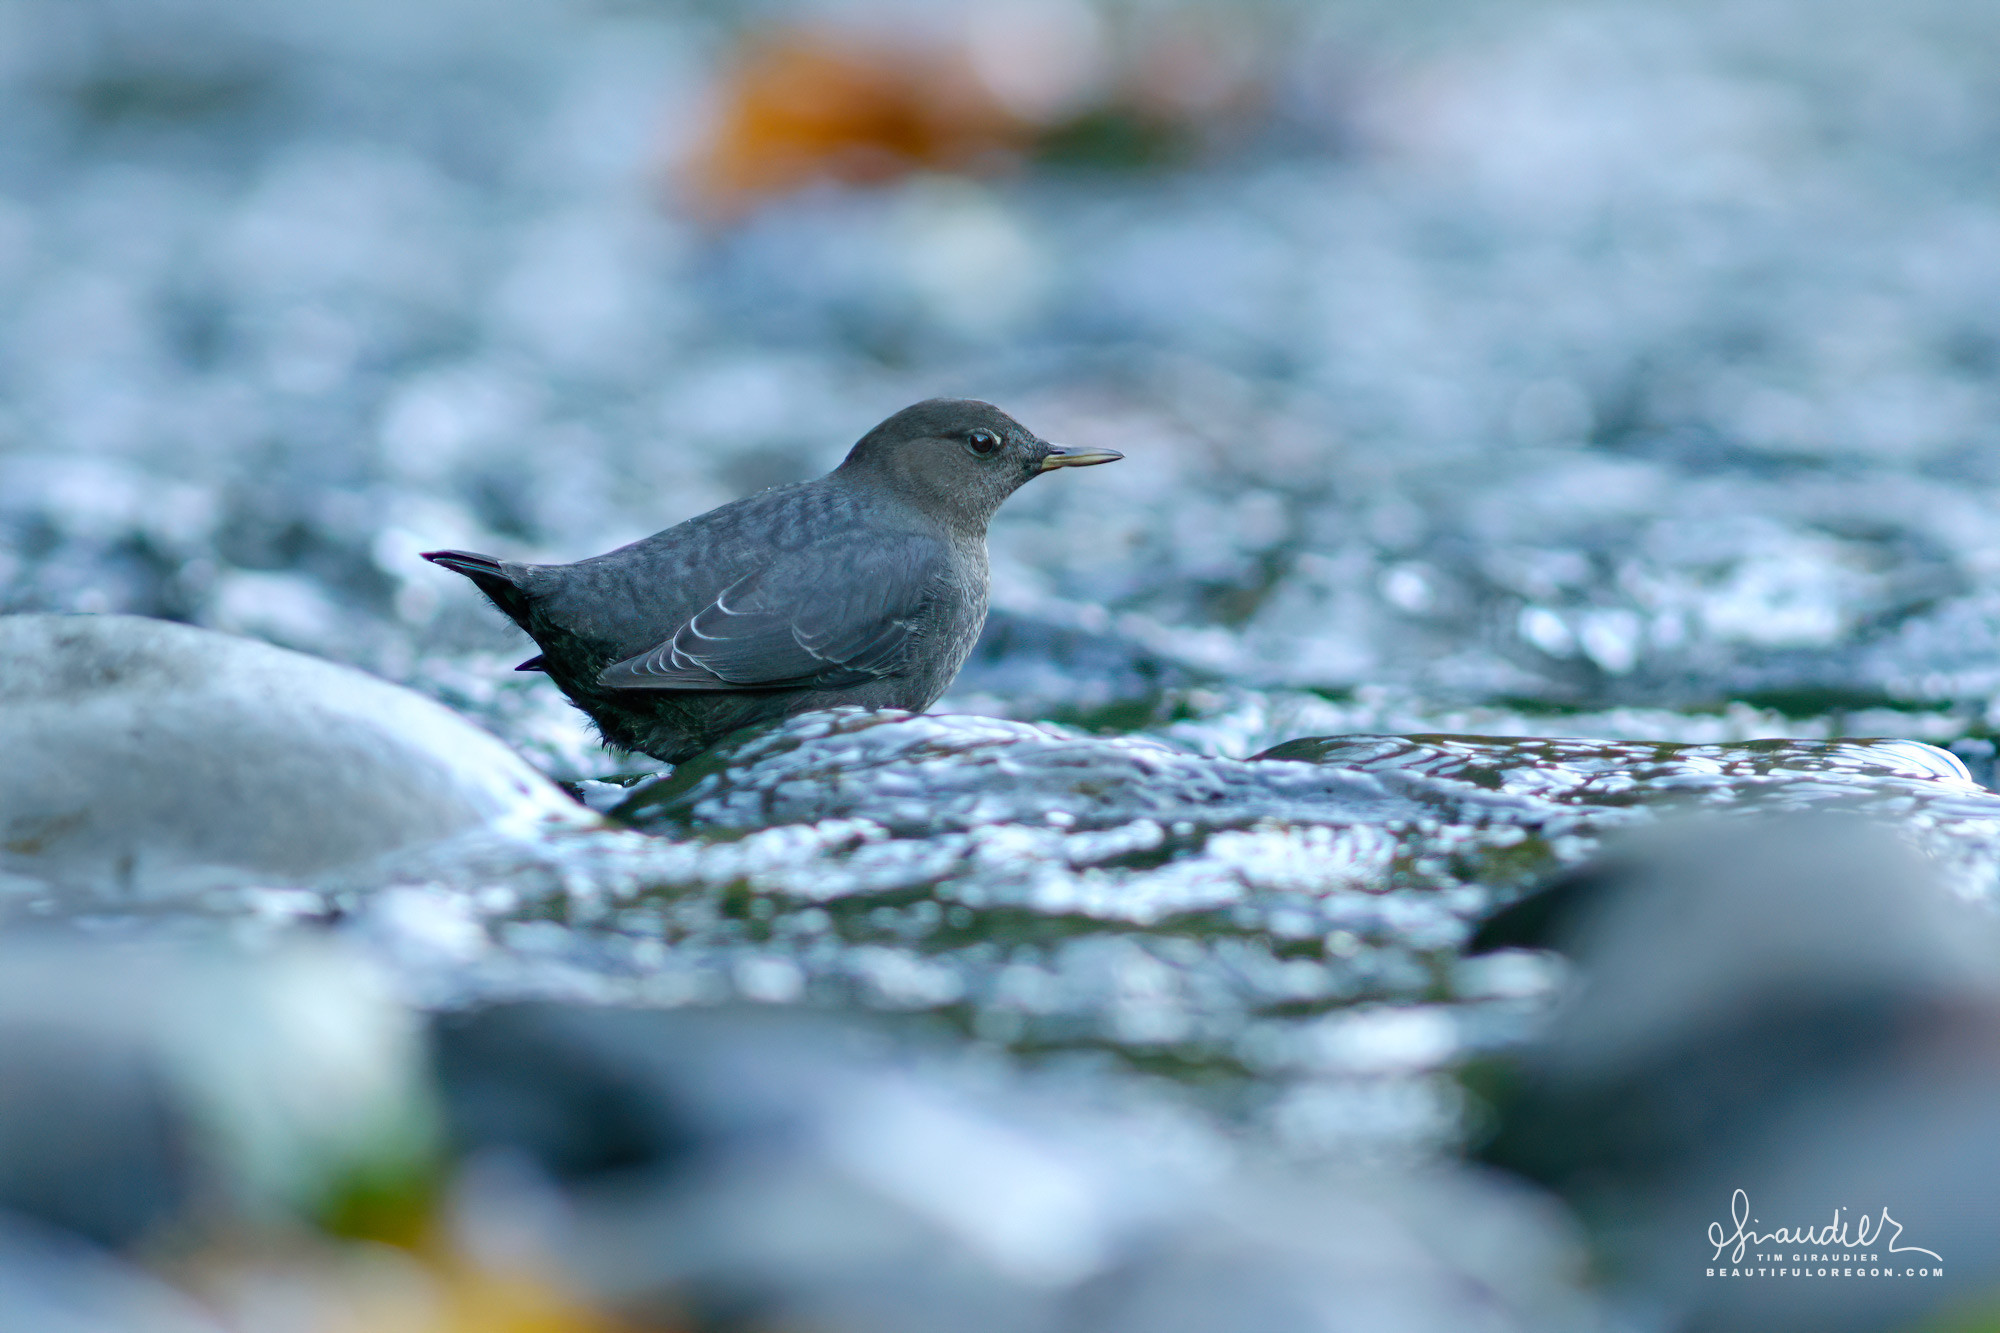 An American Dipper (Cinclus mexicanus) forages gravel beds in Eagle Creek for recently spawned Coho Salmon eggs. Columbia River Gorge, Oregon.